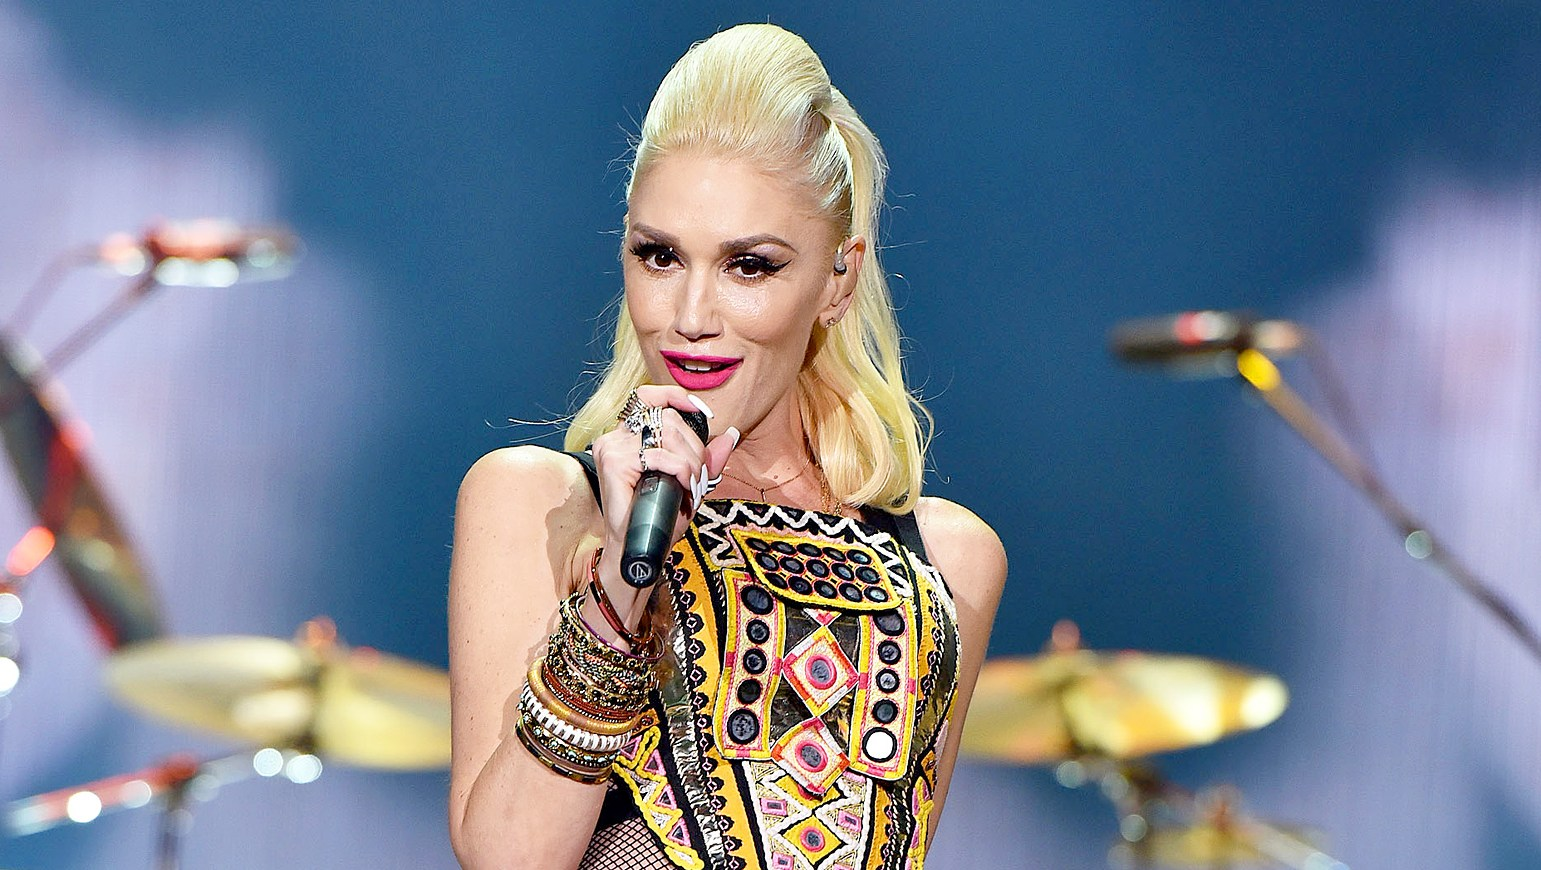 Gwen Stefani performs during the 2015 KAABOO Del Mar at the Del Mar Fairgrounds in Del Mar, California.